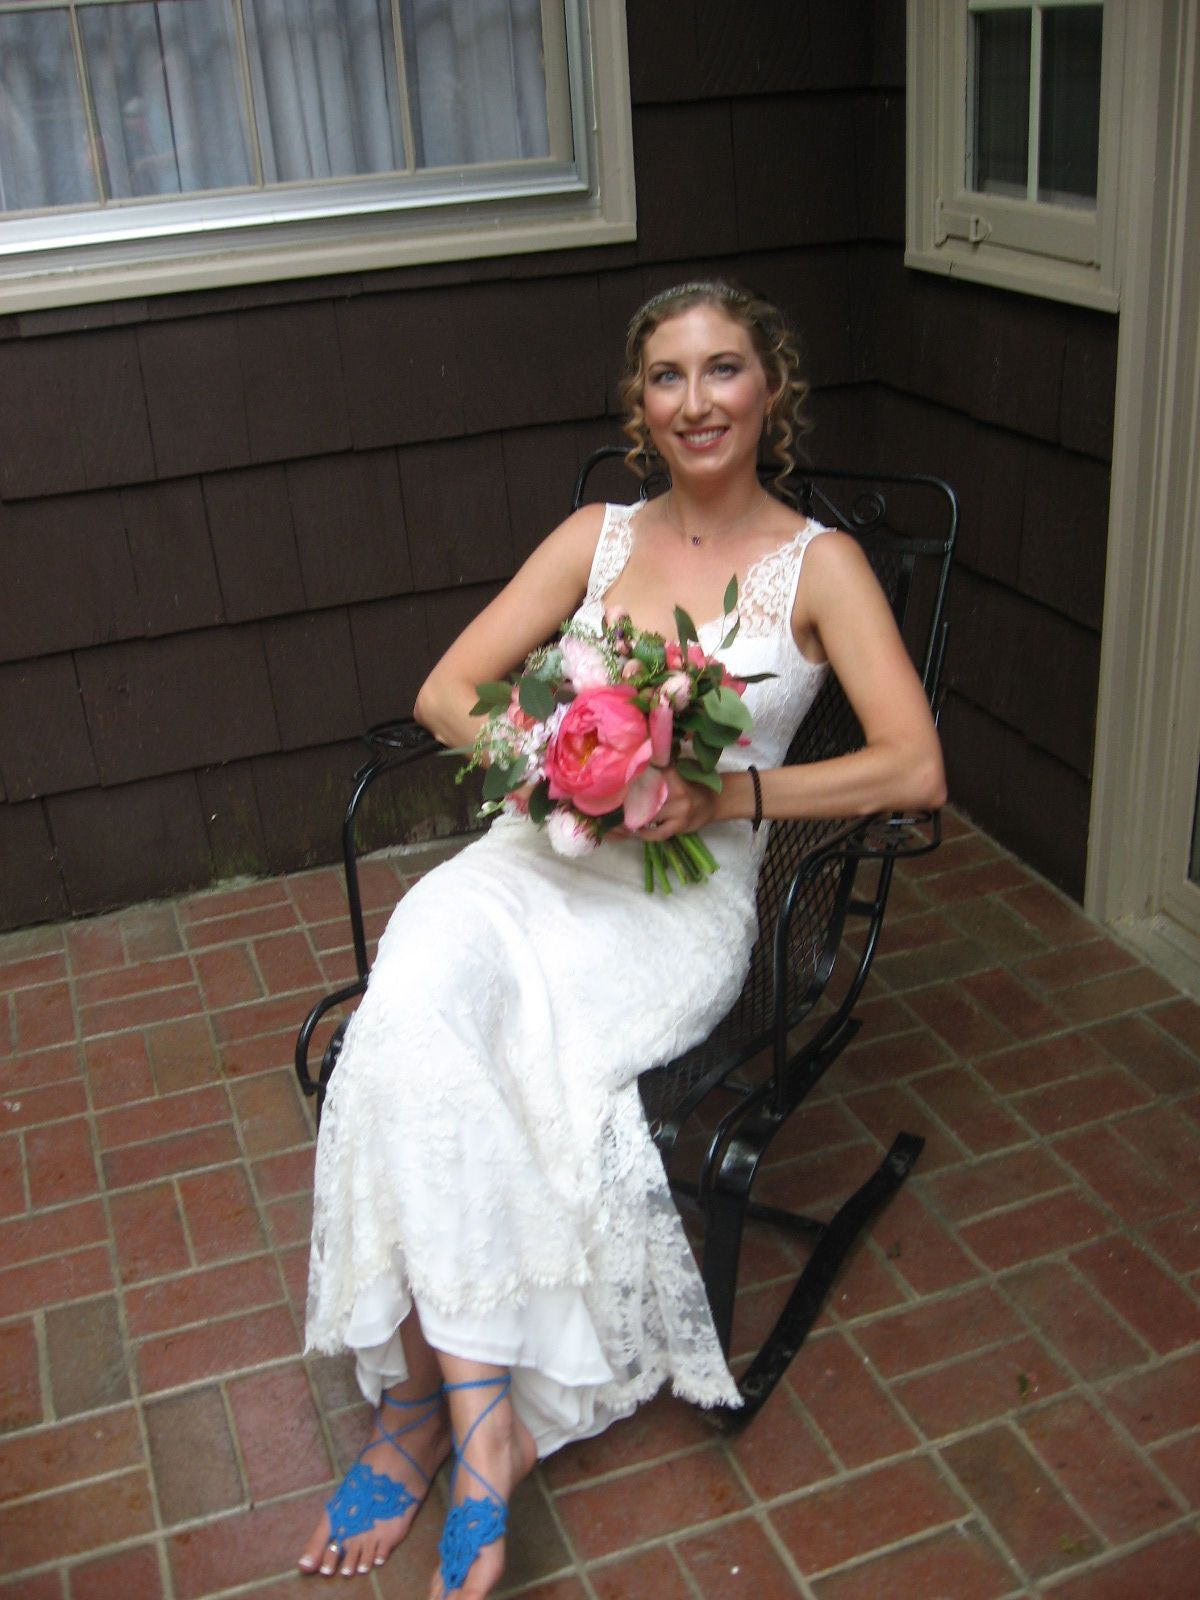 A beautiful and very relaxed bride. The bride started her